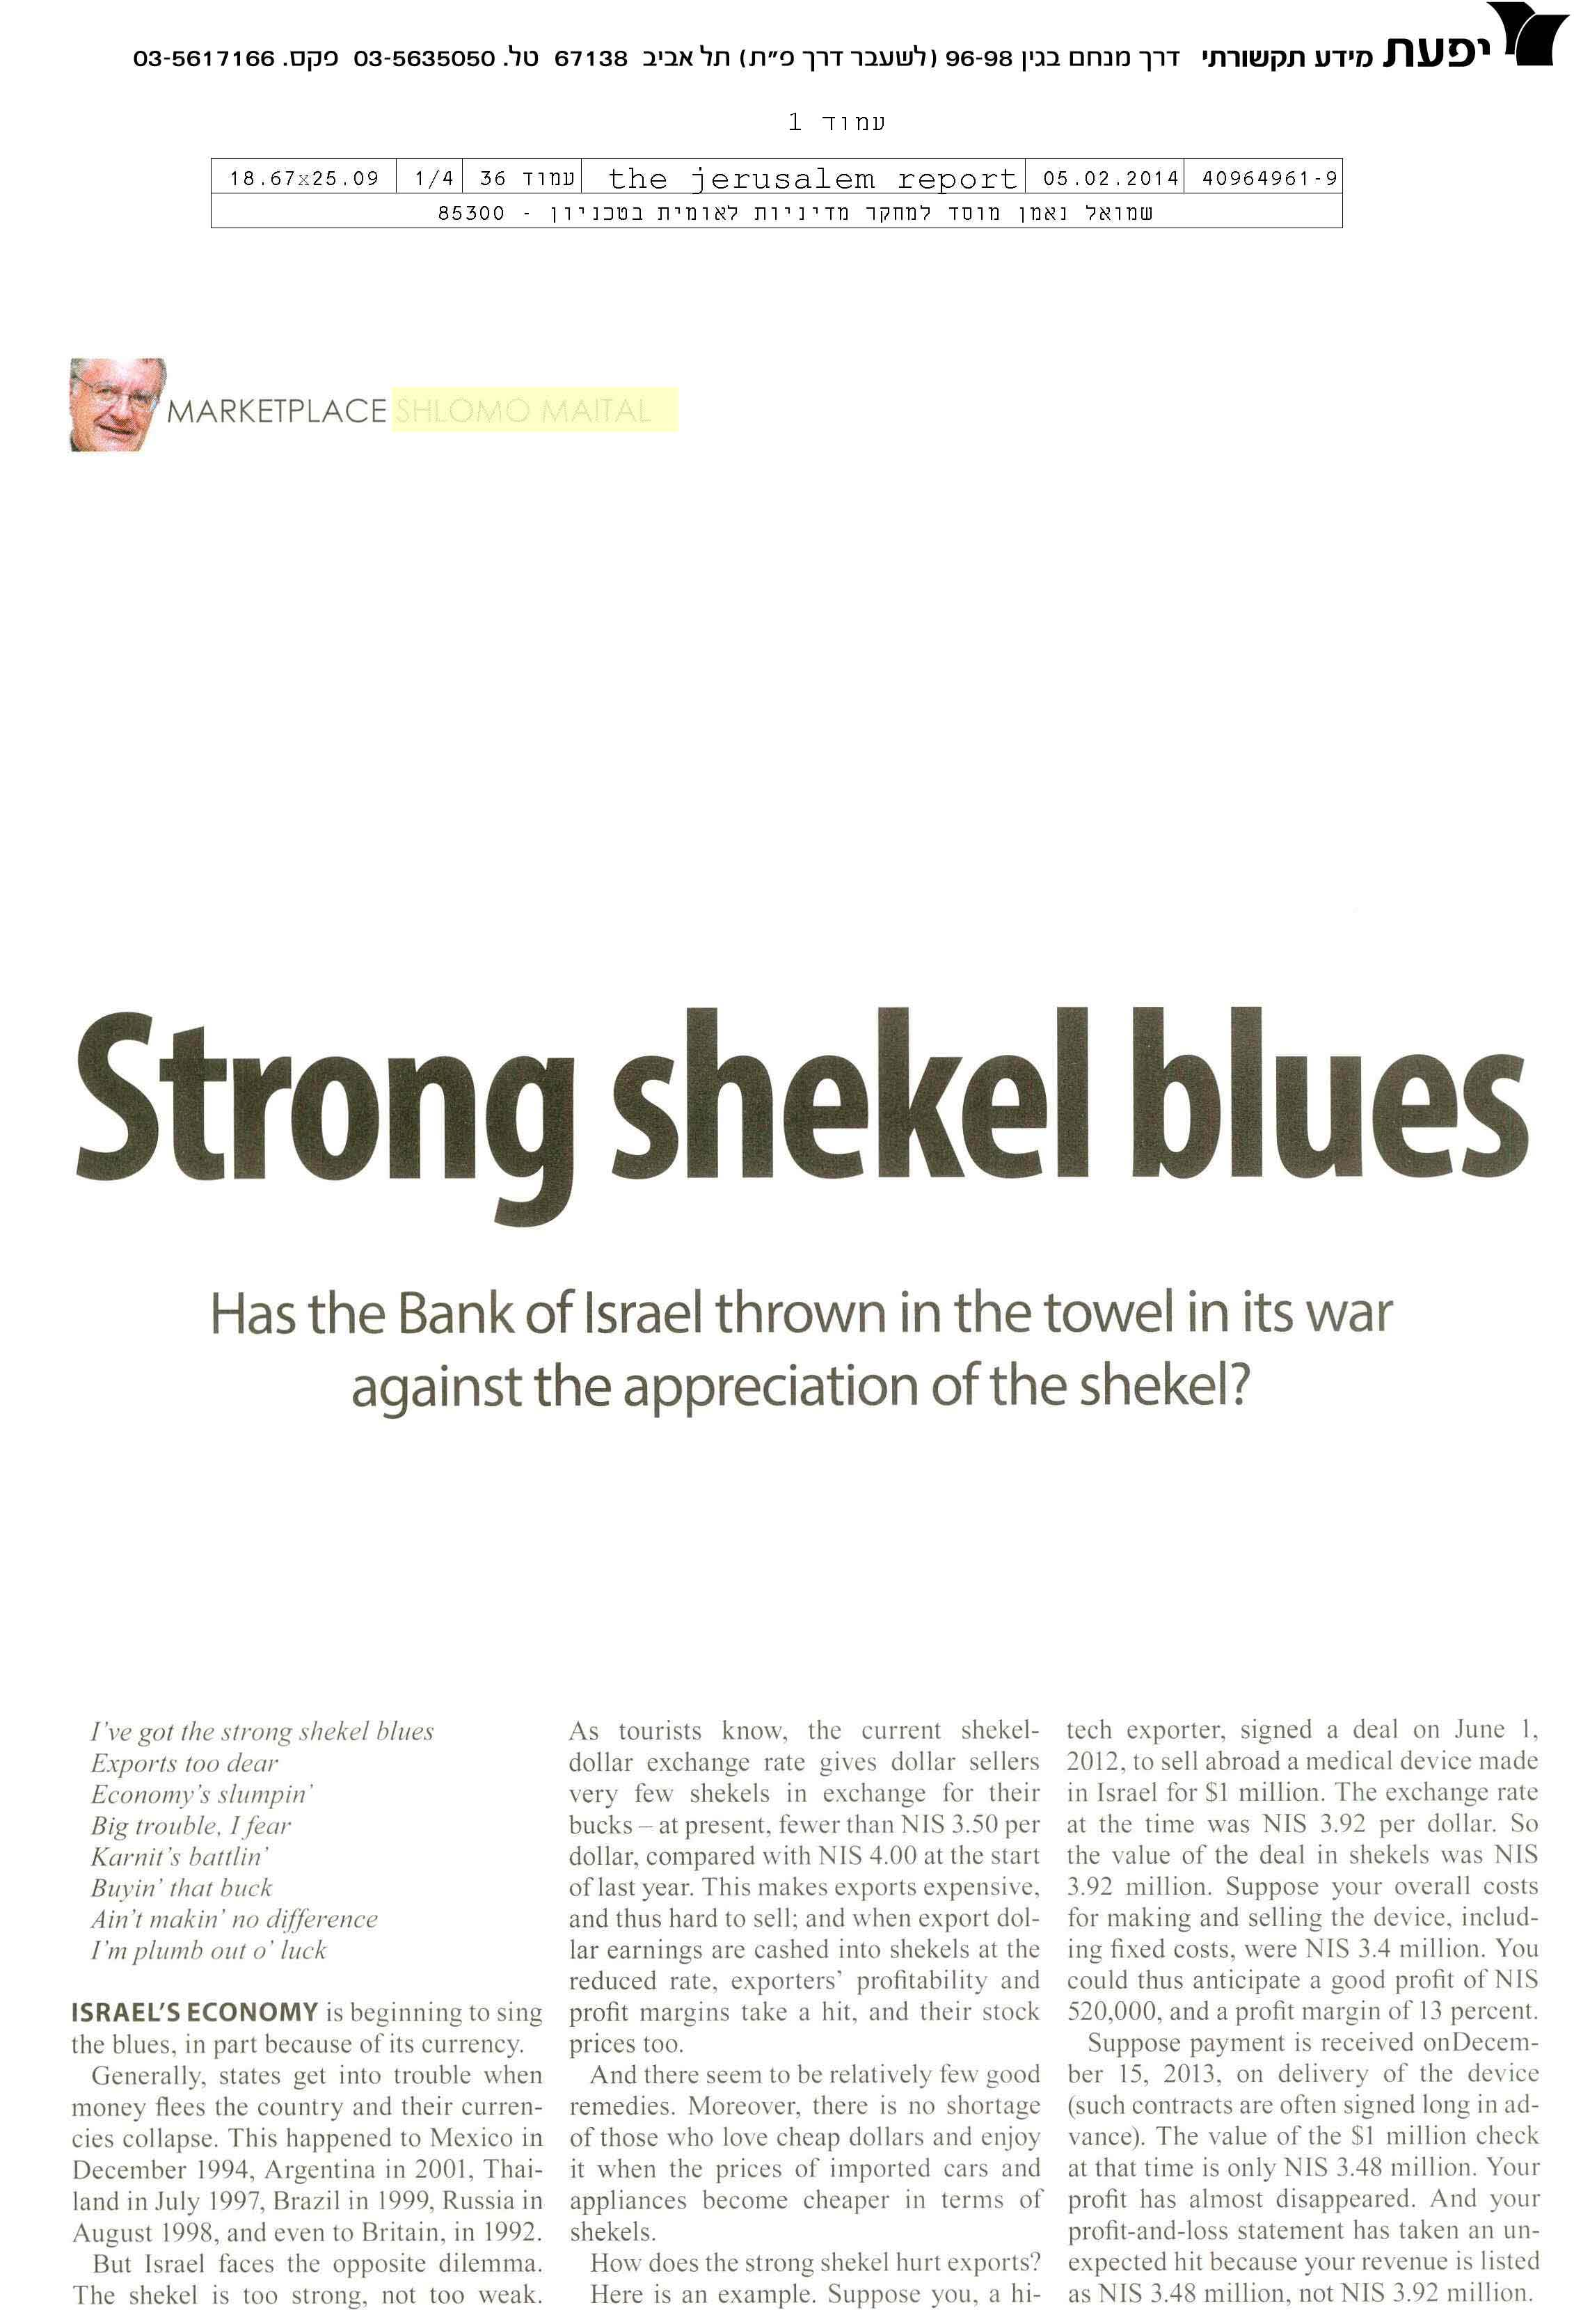 Strong shekel blues